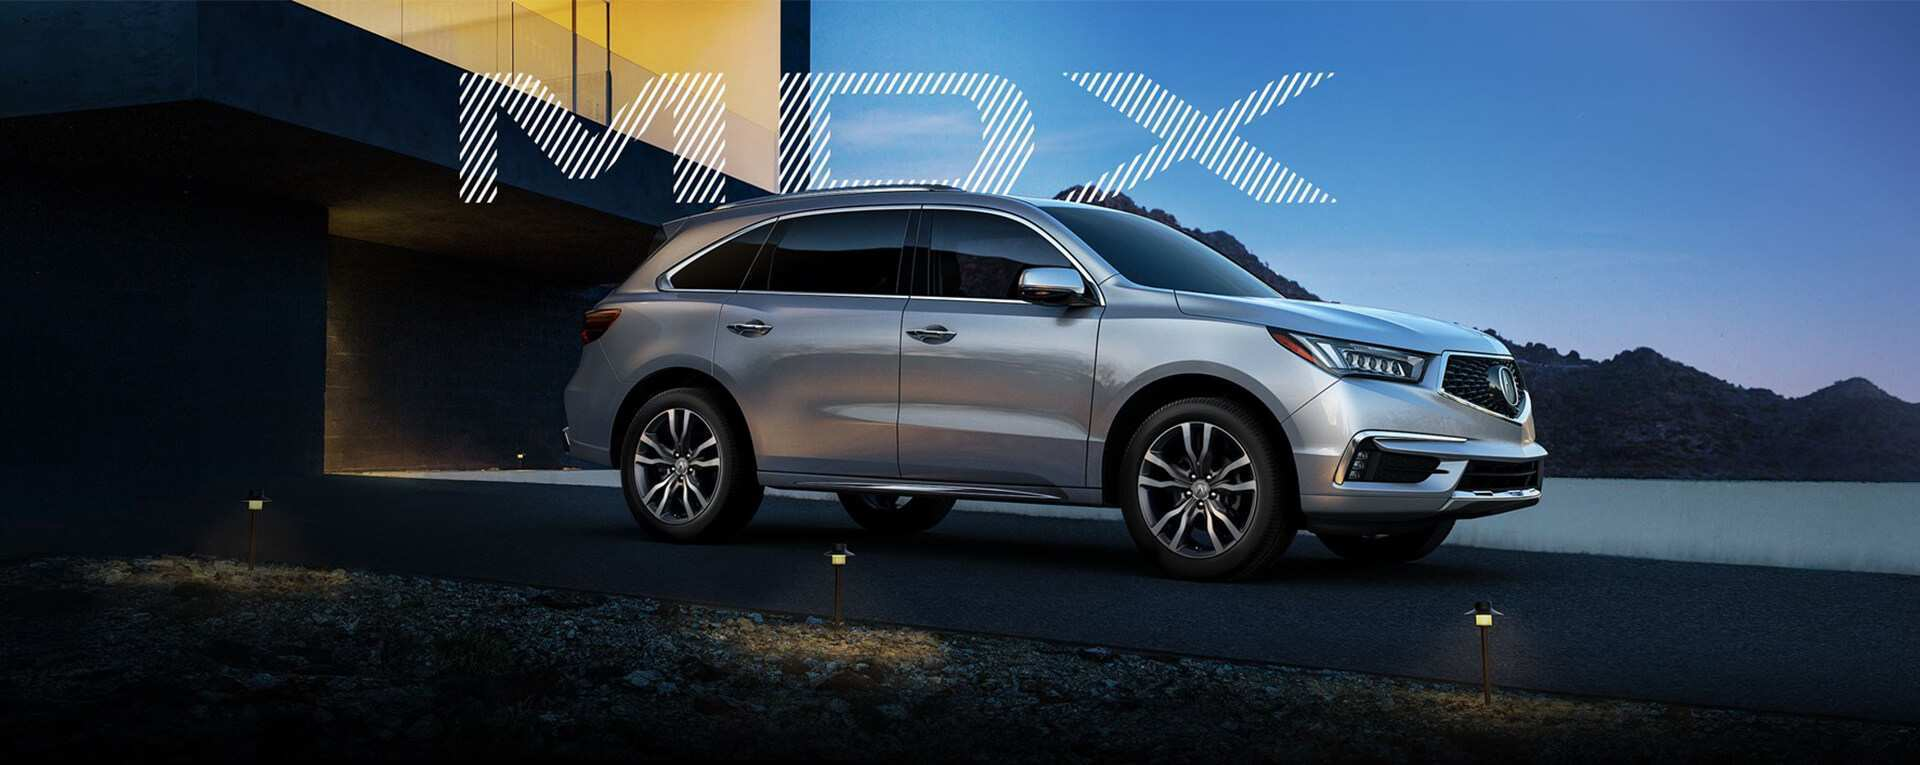 34 All New Best When Will Acura 2019 Mdx Be Available Performance Exterior and Interior with Best When Will Acura 2019 Mdx Be Available Performance